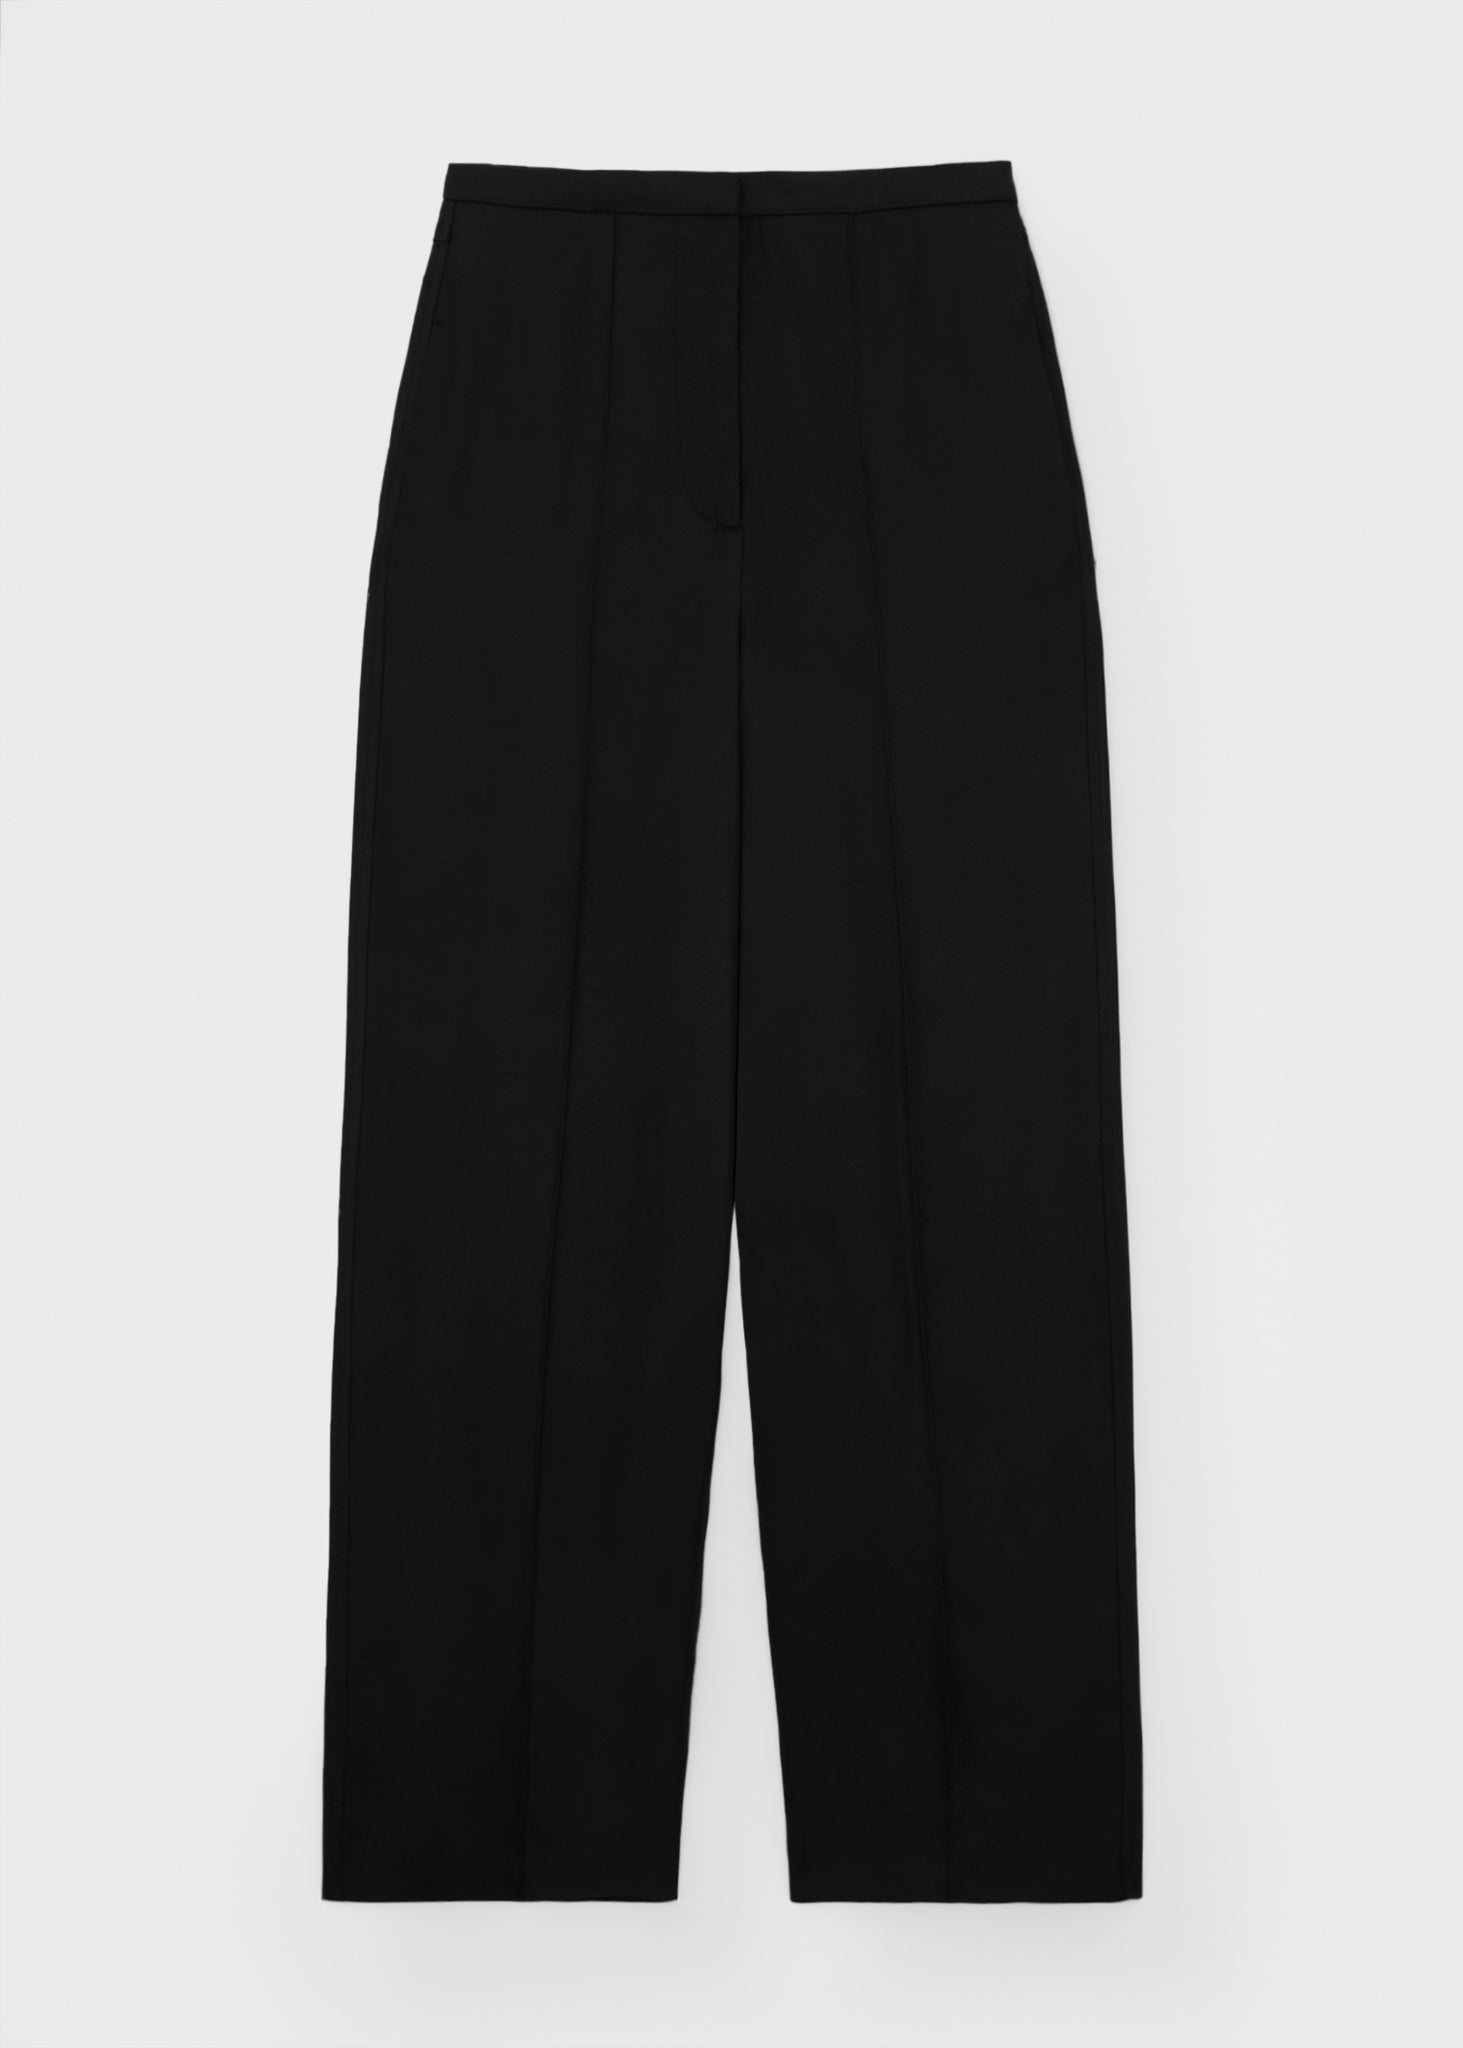 Pine suit trousers black